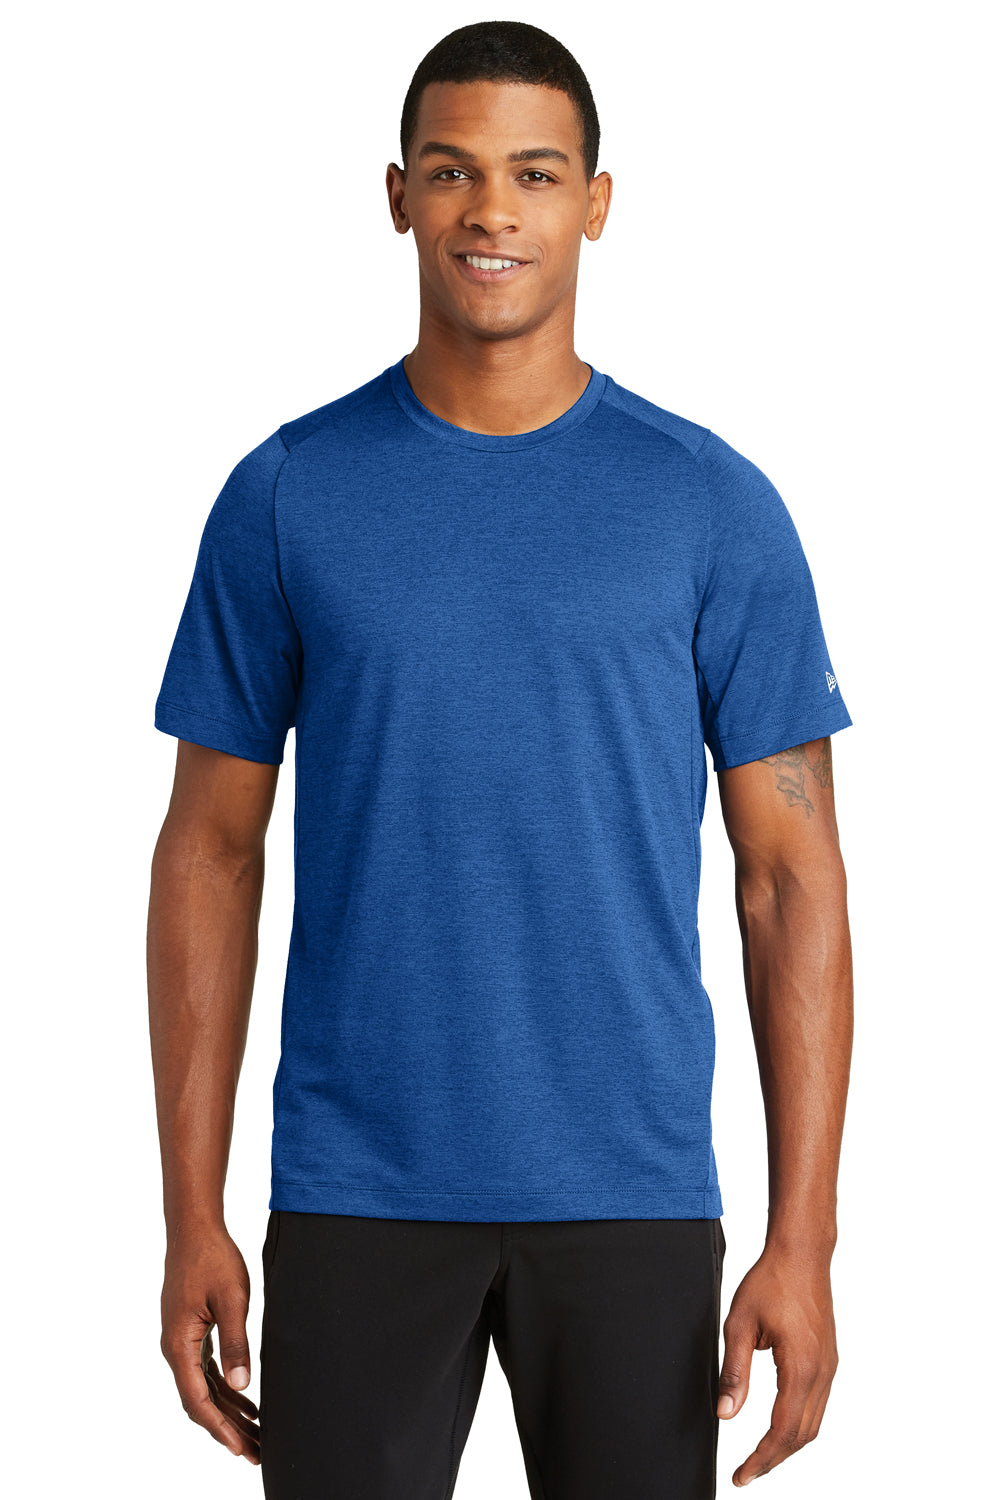 New Era NEA200 Mens Series Performance Jersey Moisture Wicking Short Sleeve Crewneck T-Shirt Royal Blue Front